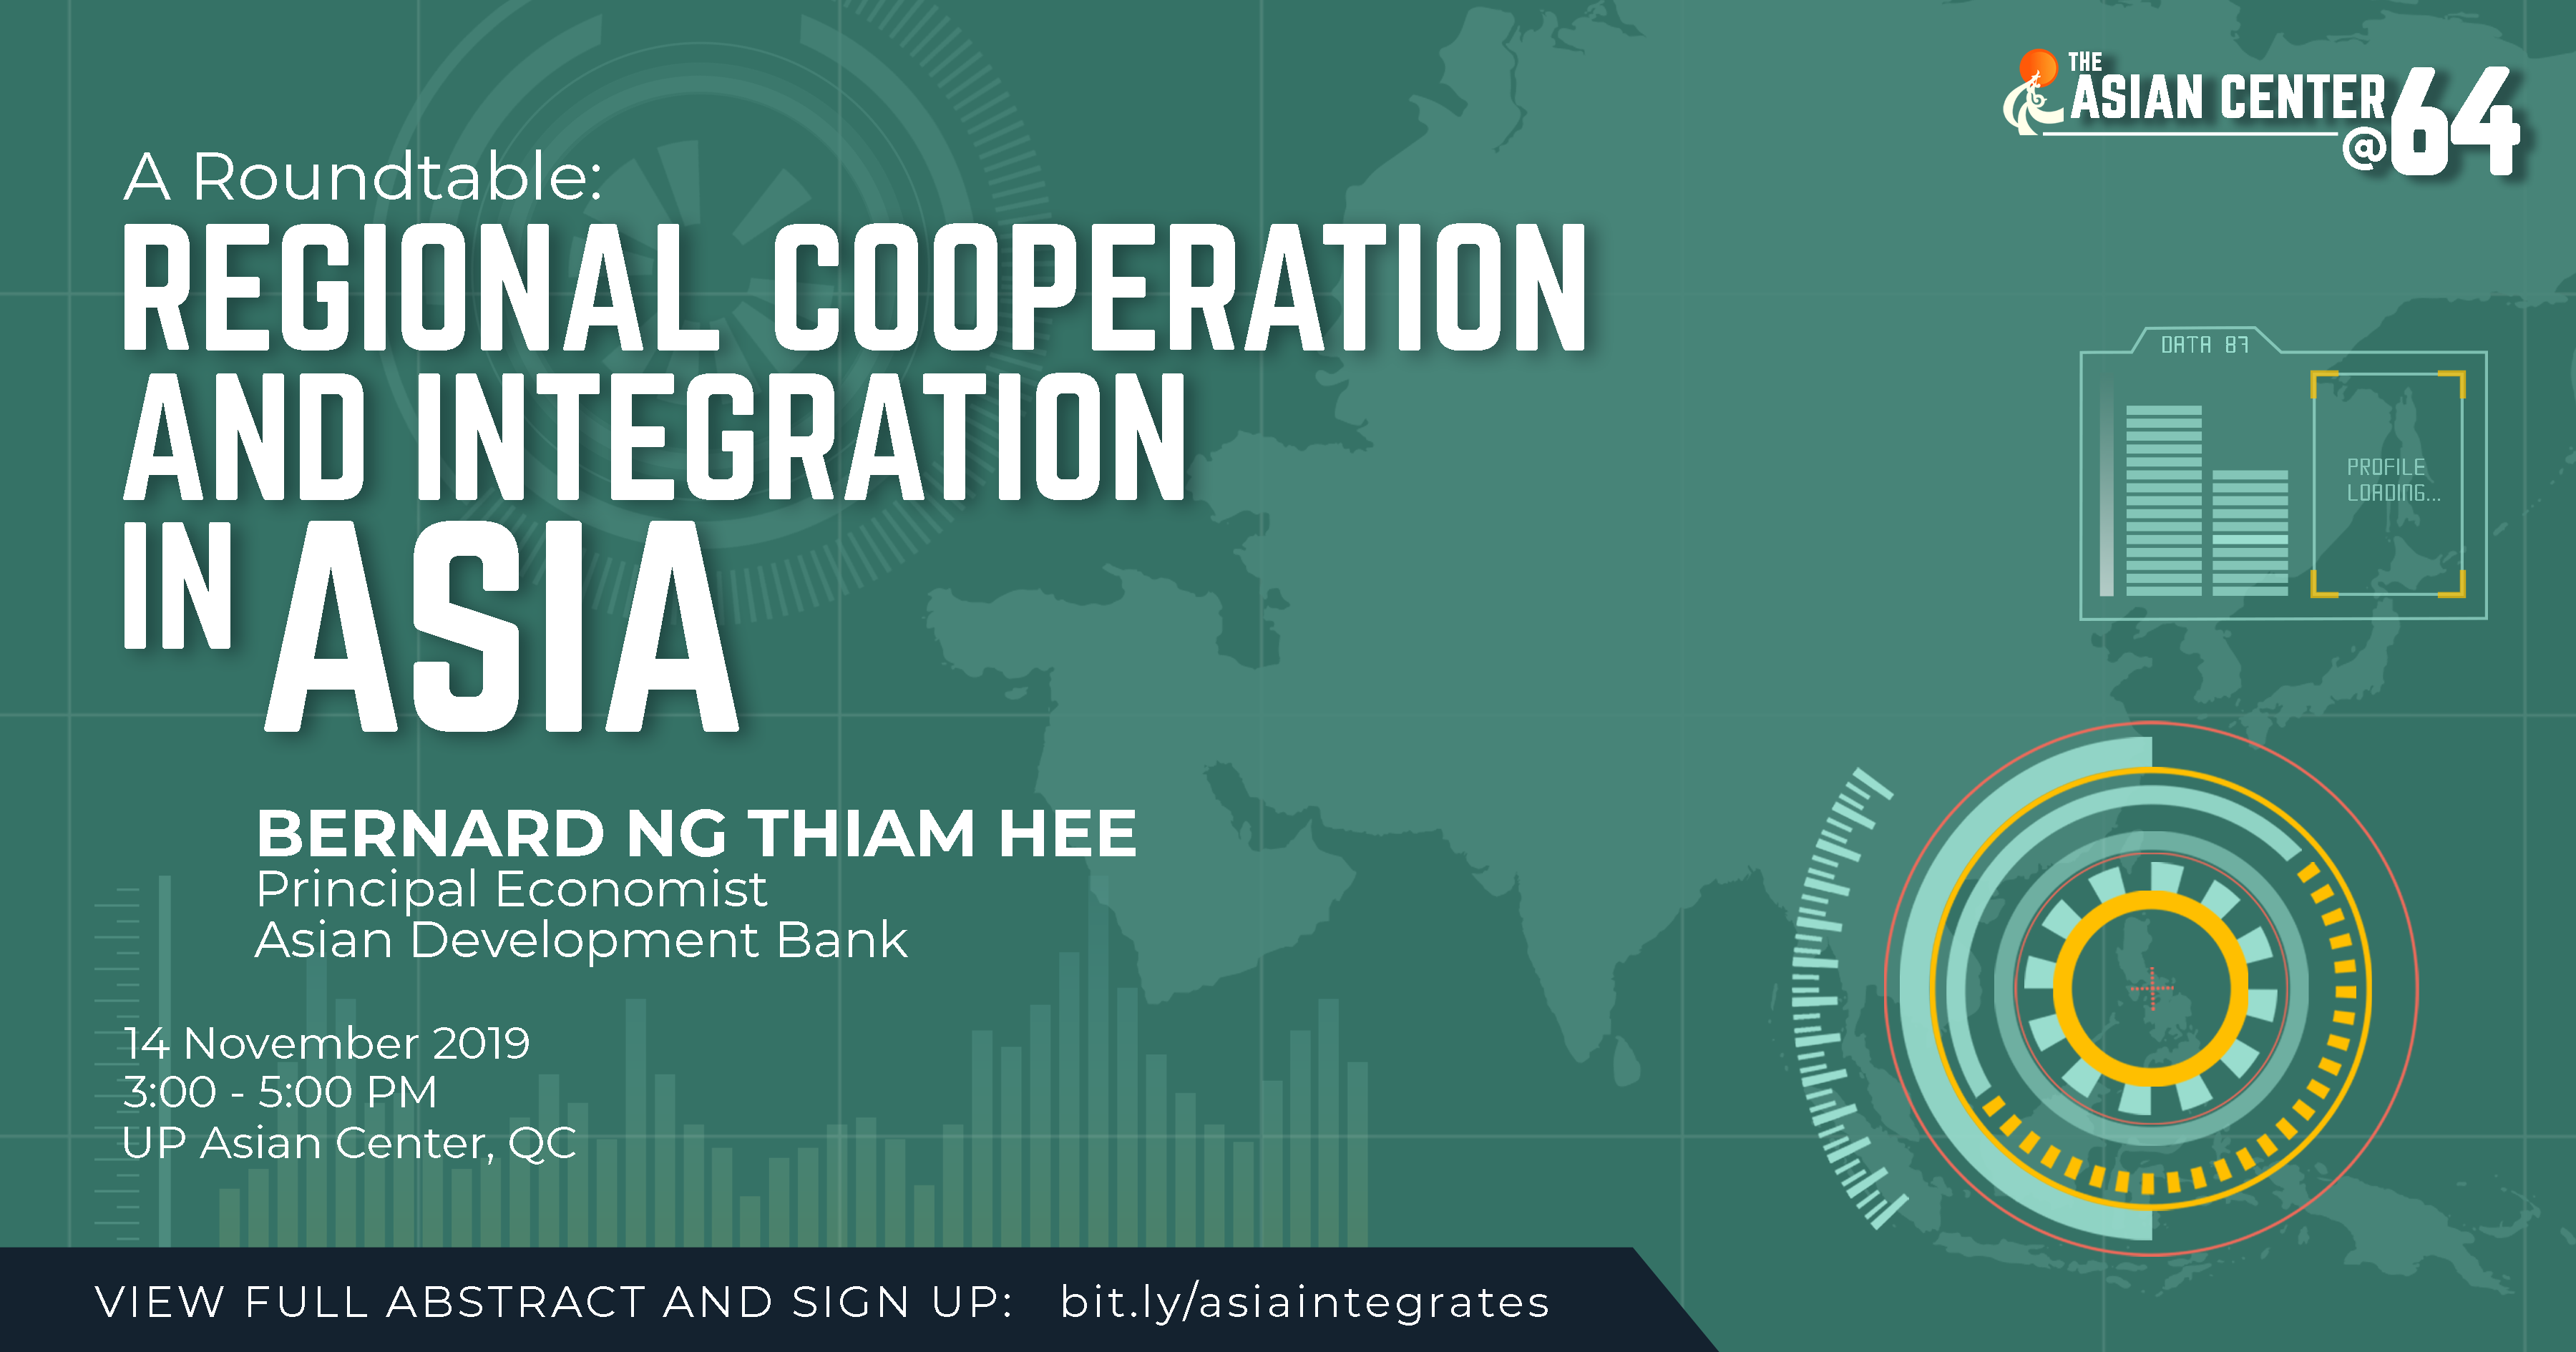 Regional Integration and Cooperation in Asia | A Roundtable